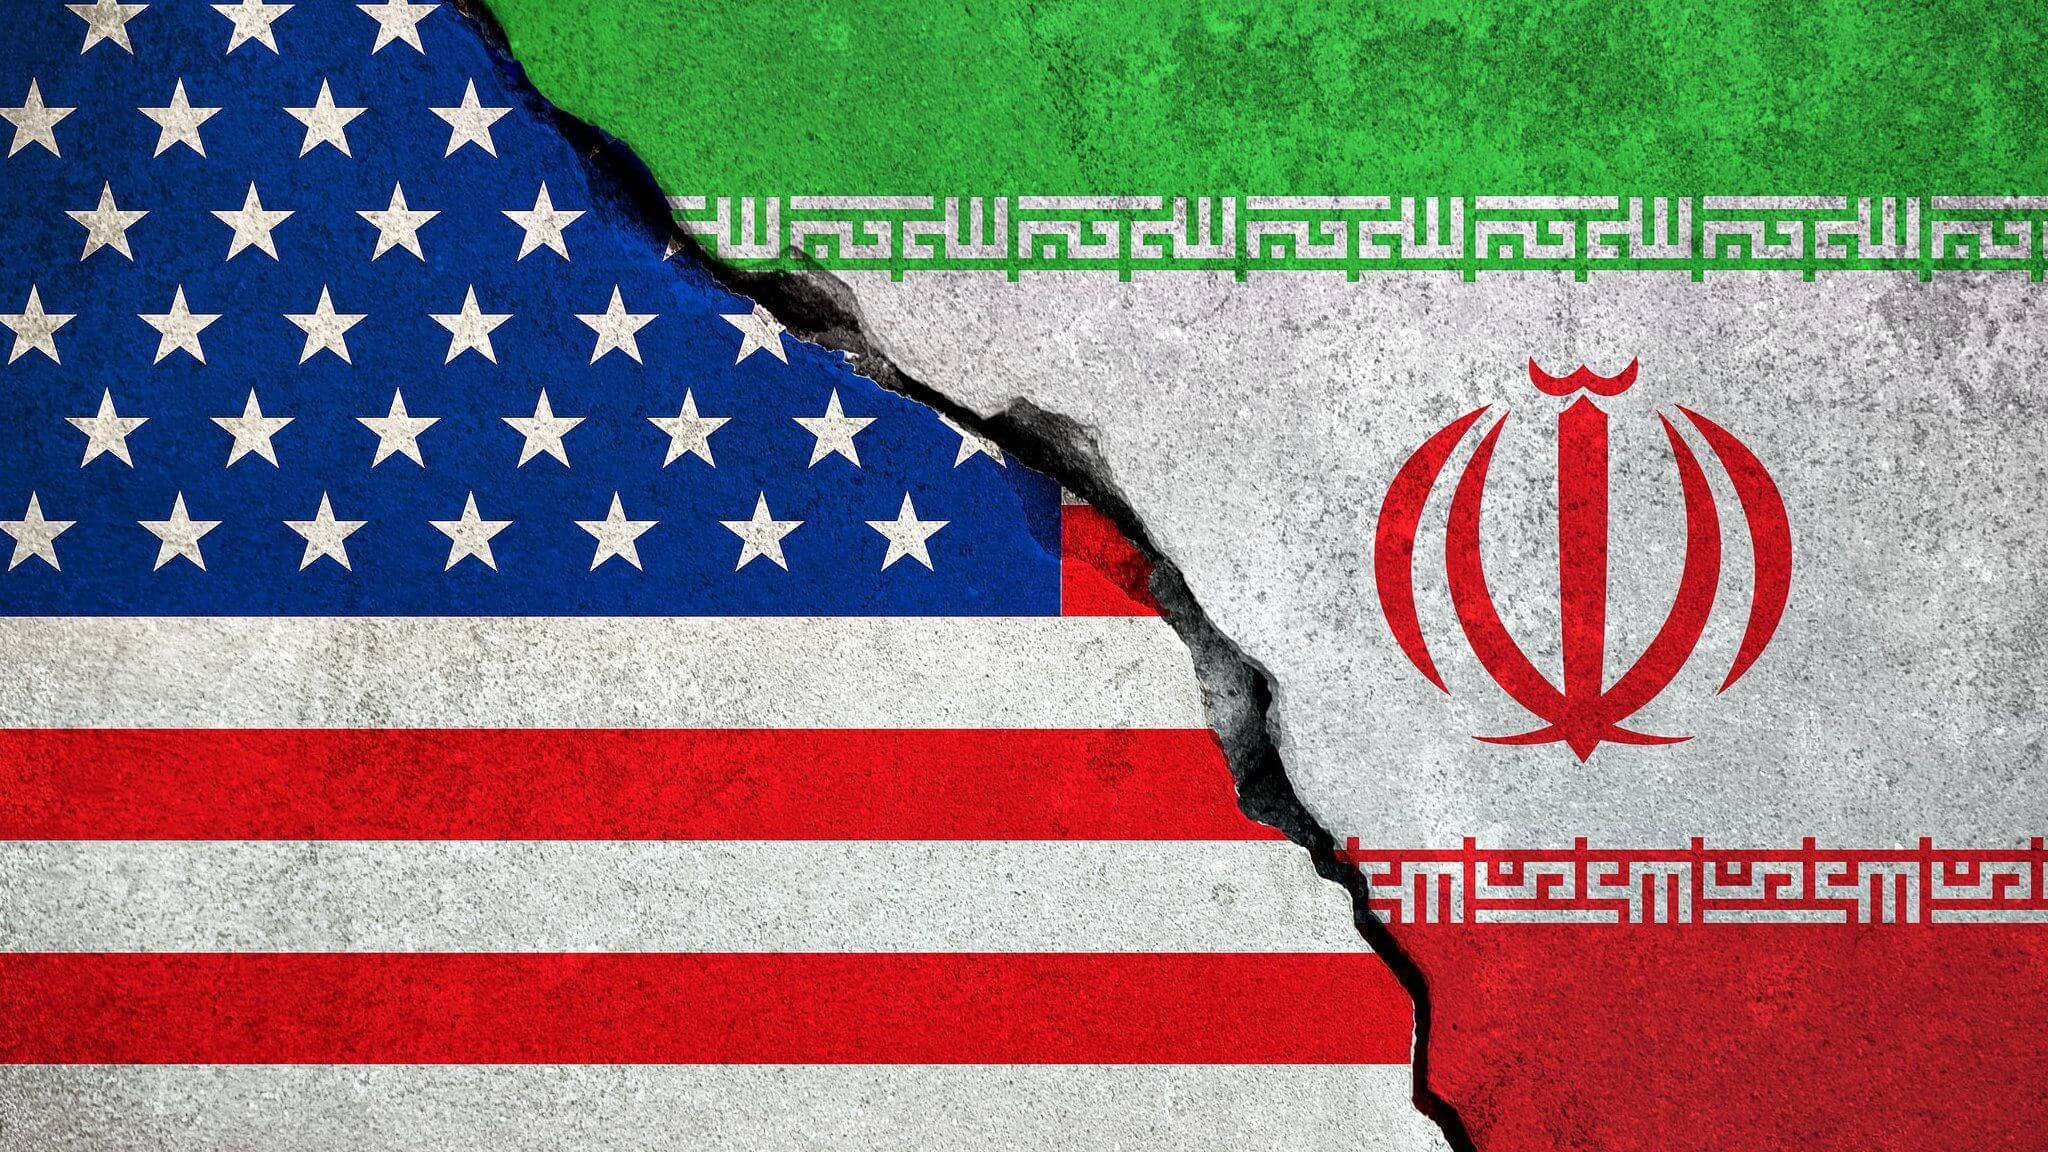 Will the United States Bomb Iran before Trump leaves?